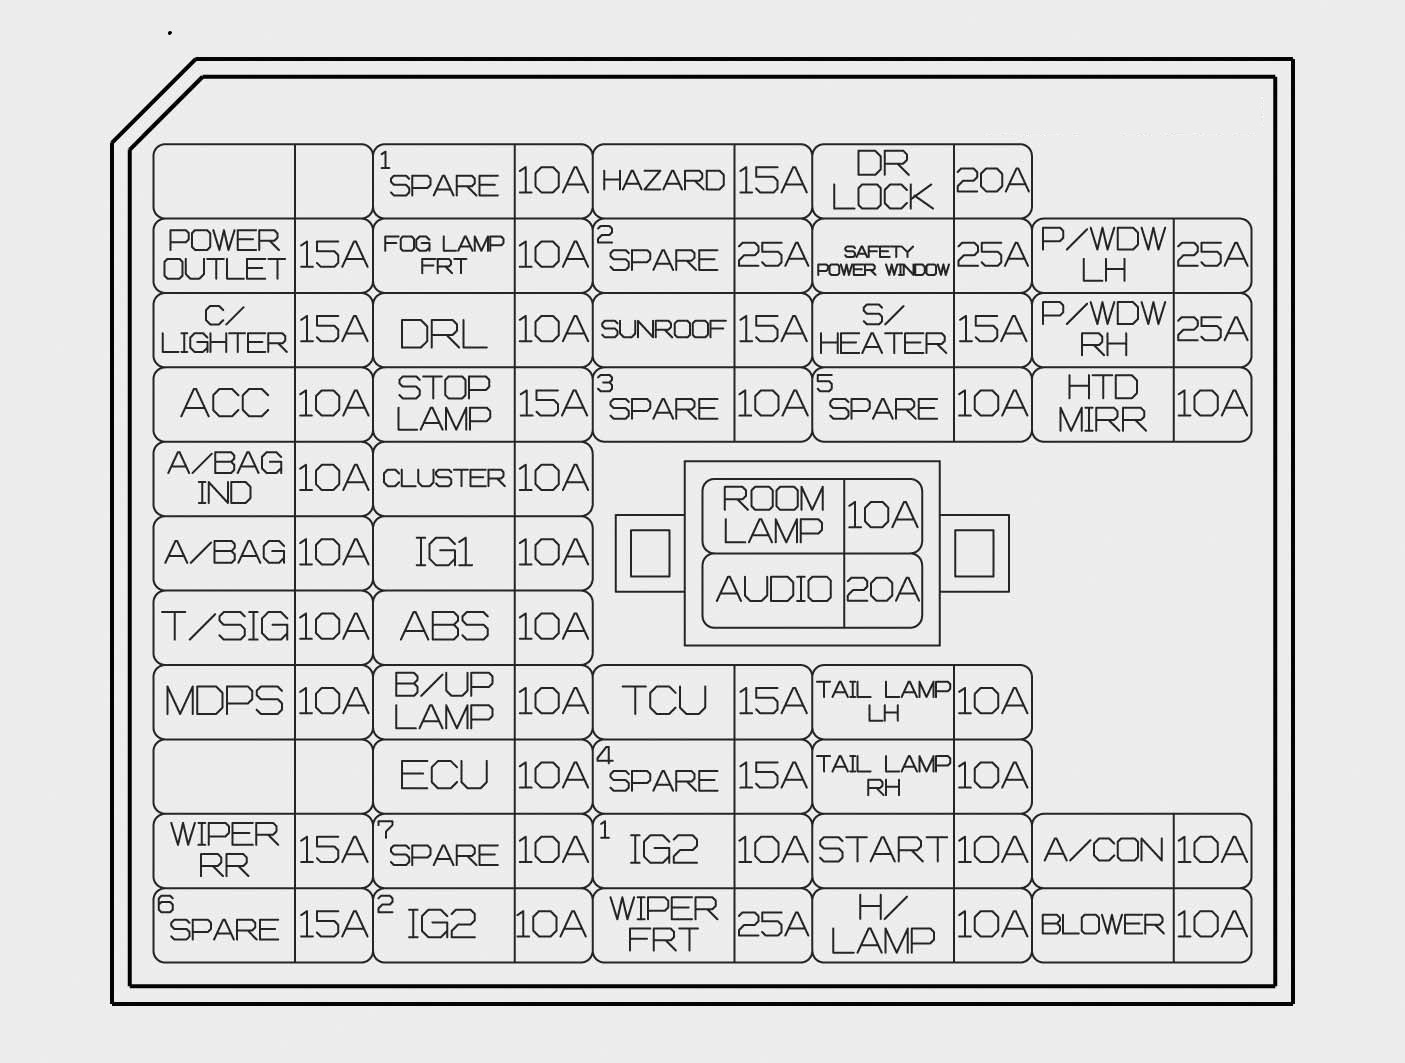 2011 sonata fuse panel wiring diagram 2011 sonata heated seat wiring diagram fuse box diagram on a 2001 hyundai sonata sonata hyundai ... #2